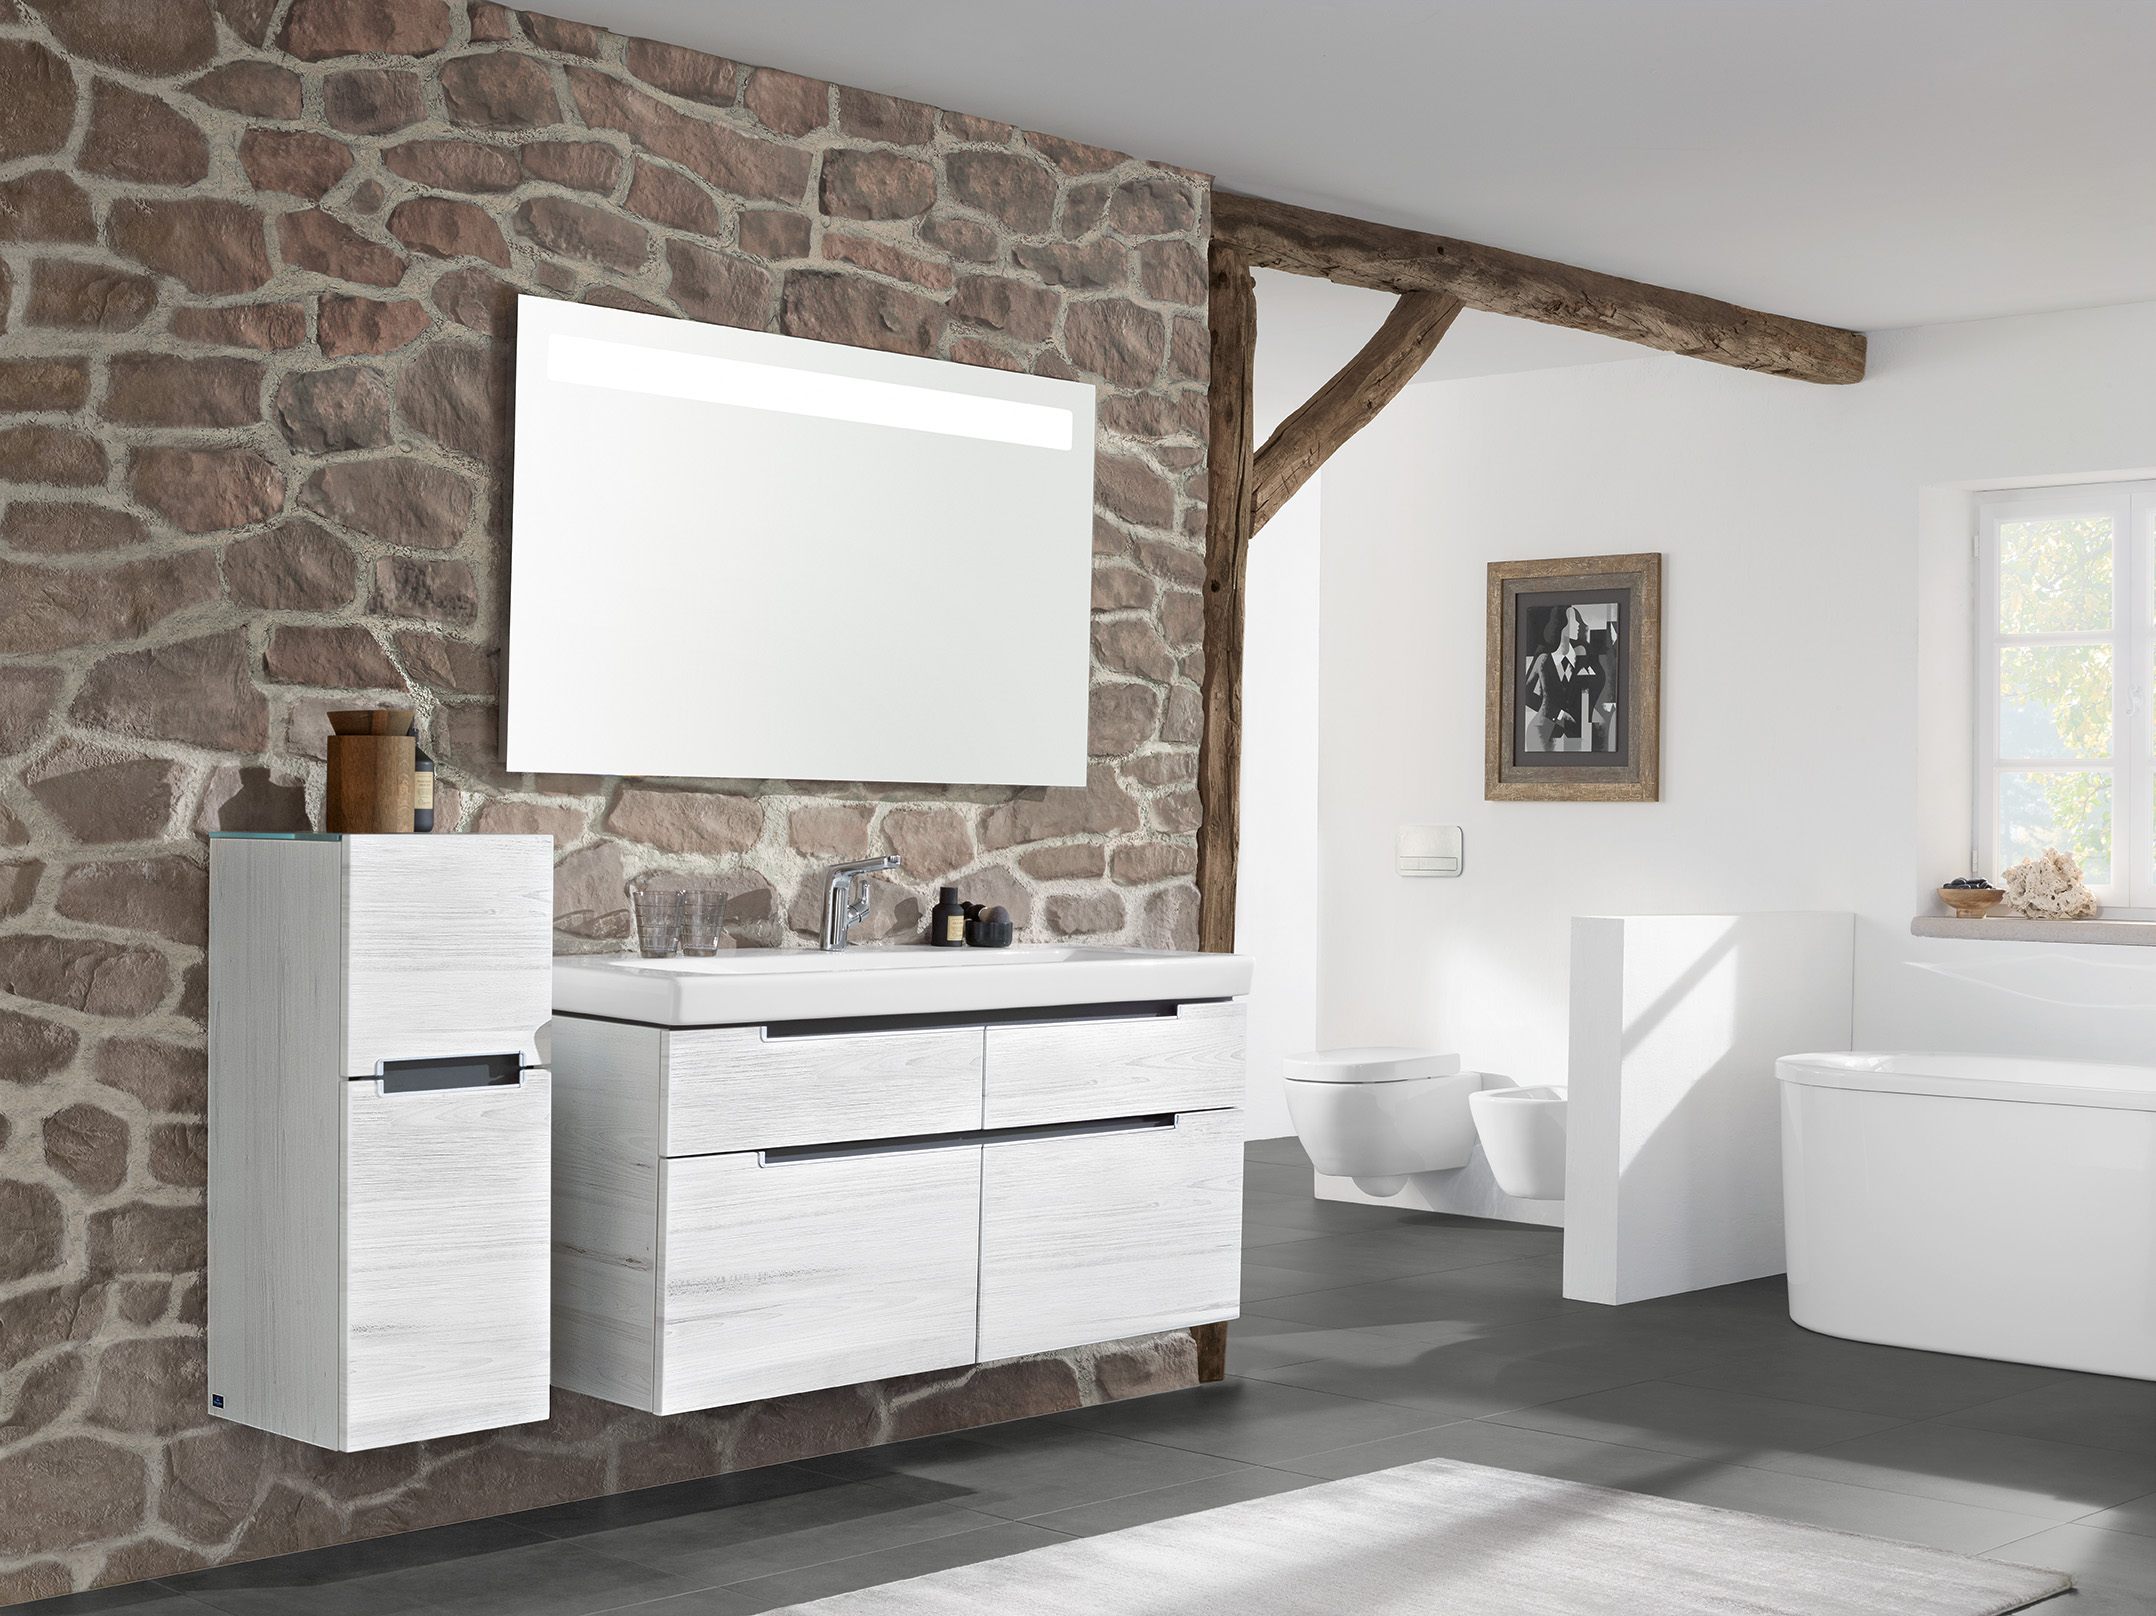 rustikal modernes bad mit charme badideen im online shop xtwostore. Black Bedroom Furniture Sets. Home Design Ideas